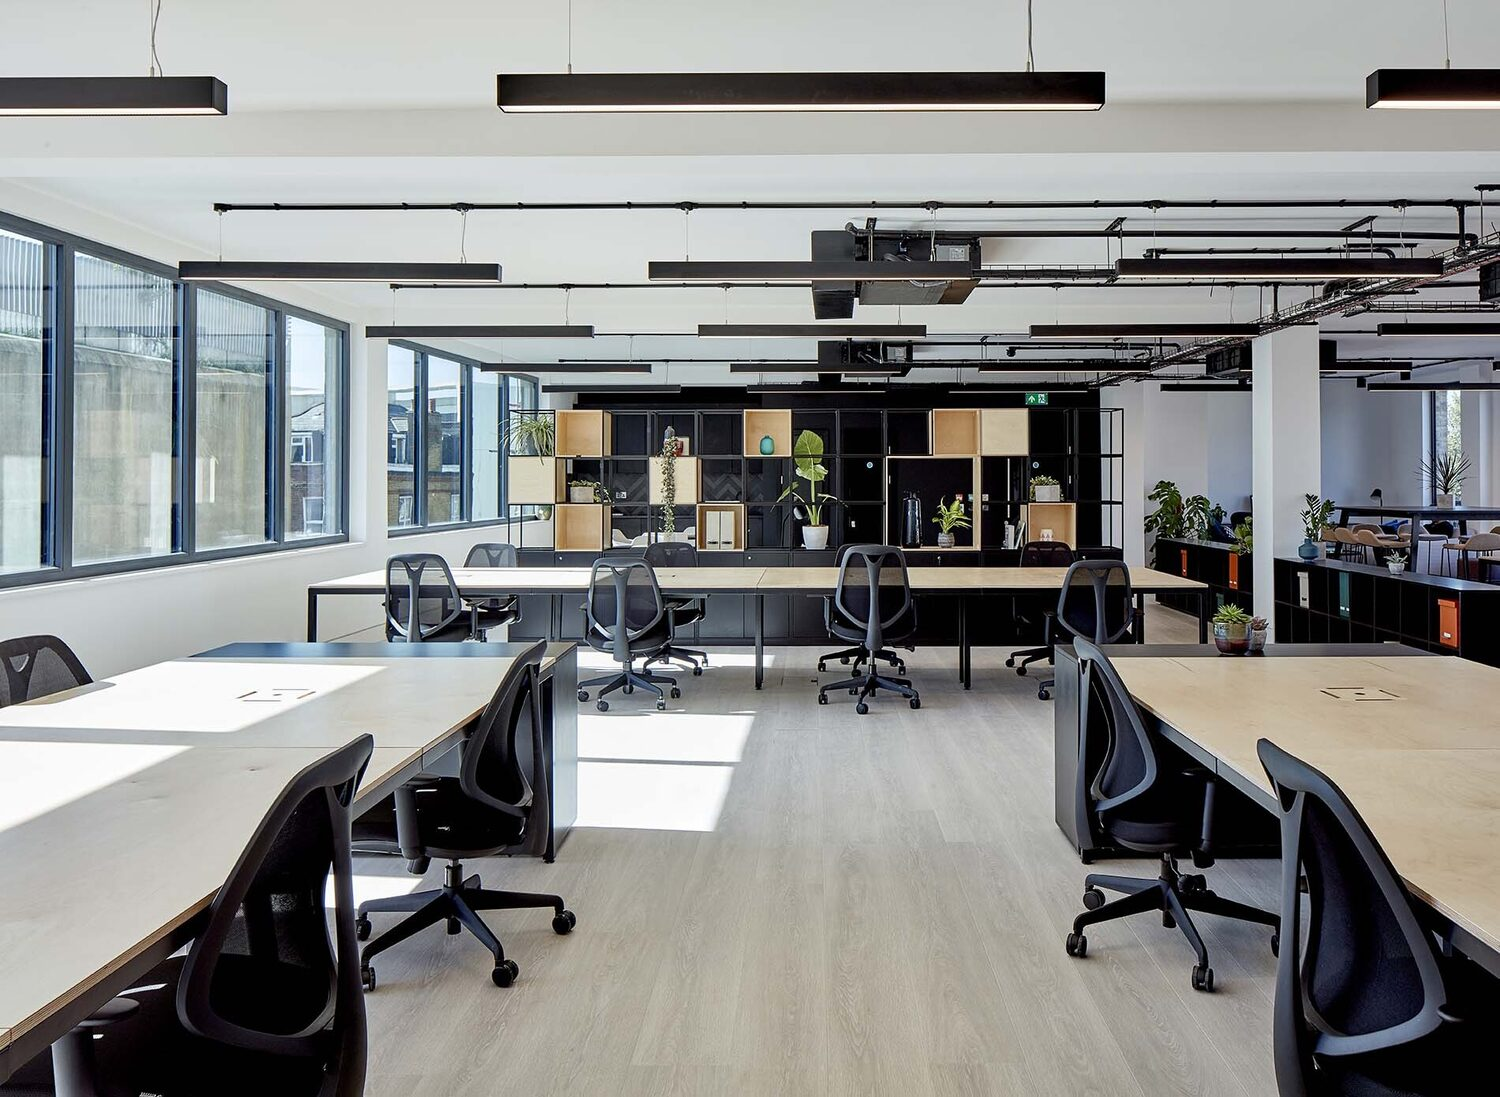 Take advantage of the super-deduction to re-fit your office